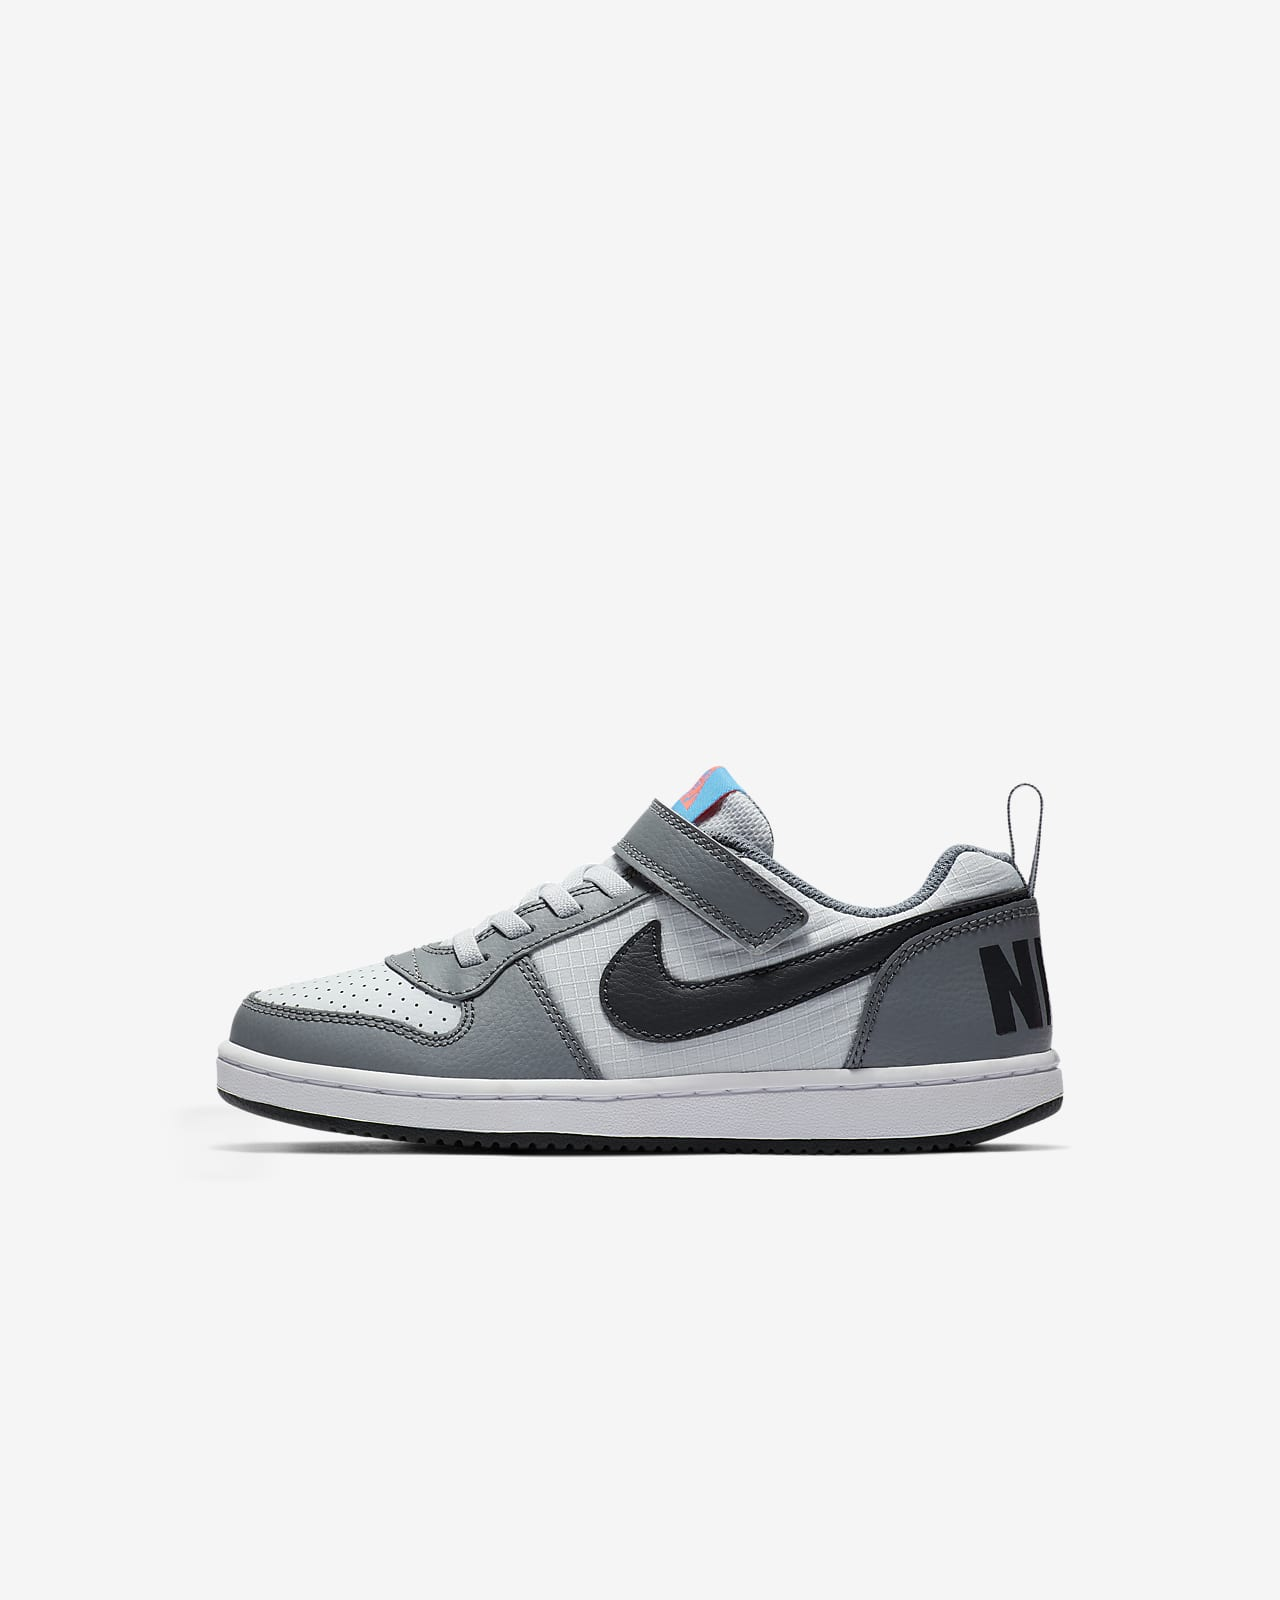 NikeCourt Borough Low Younger Kids